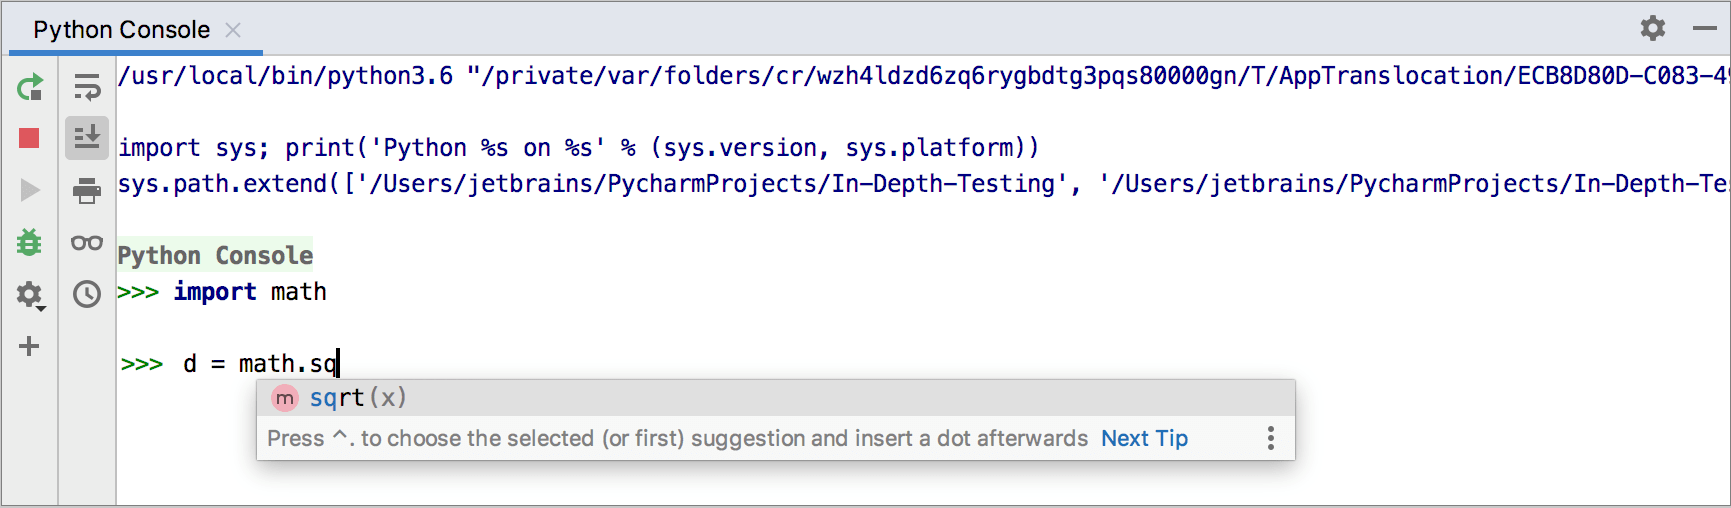 Code completion in the Python console